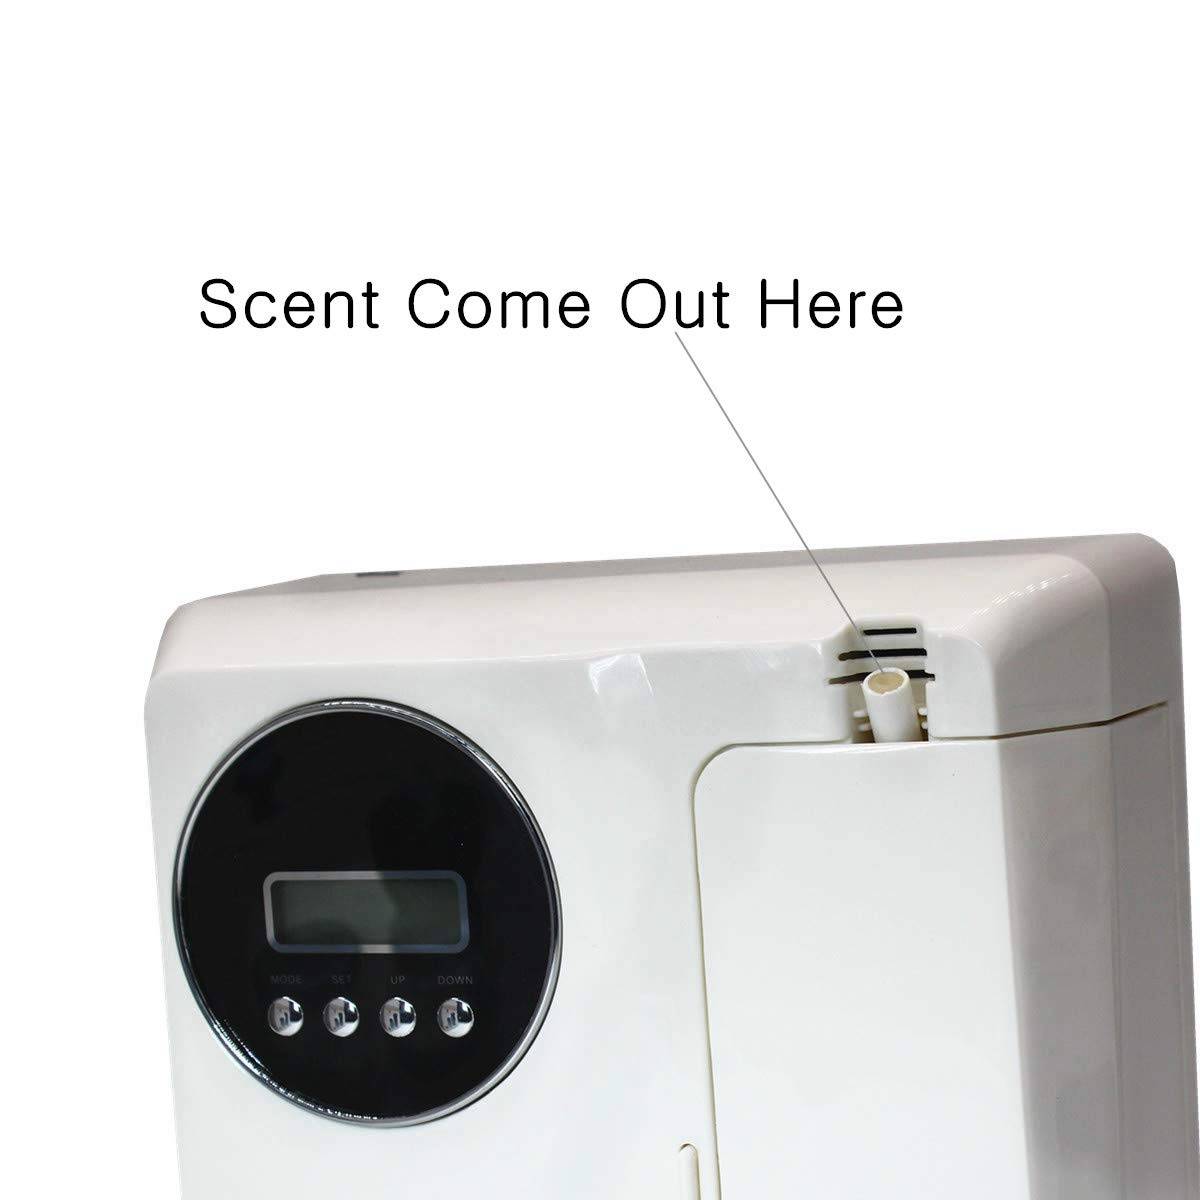 Kevinleo Scent Air Machine Aroma,Video Operation,Waterless,Flexible Work Time(Monday-Sunday),12V USA Plug,150ml Refill Bottle,Stand on Table or Mount on Wall,Fragrance Air Dispenser at Hotel SPA KTV by Kevinleo (Image #5)